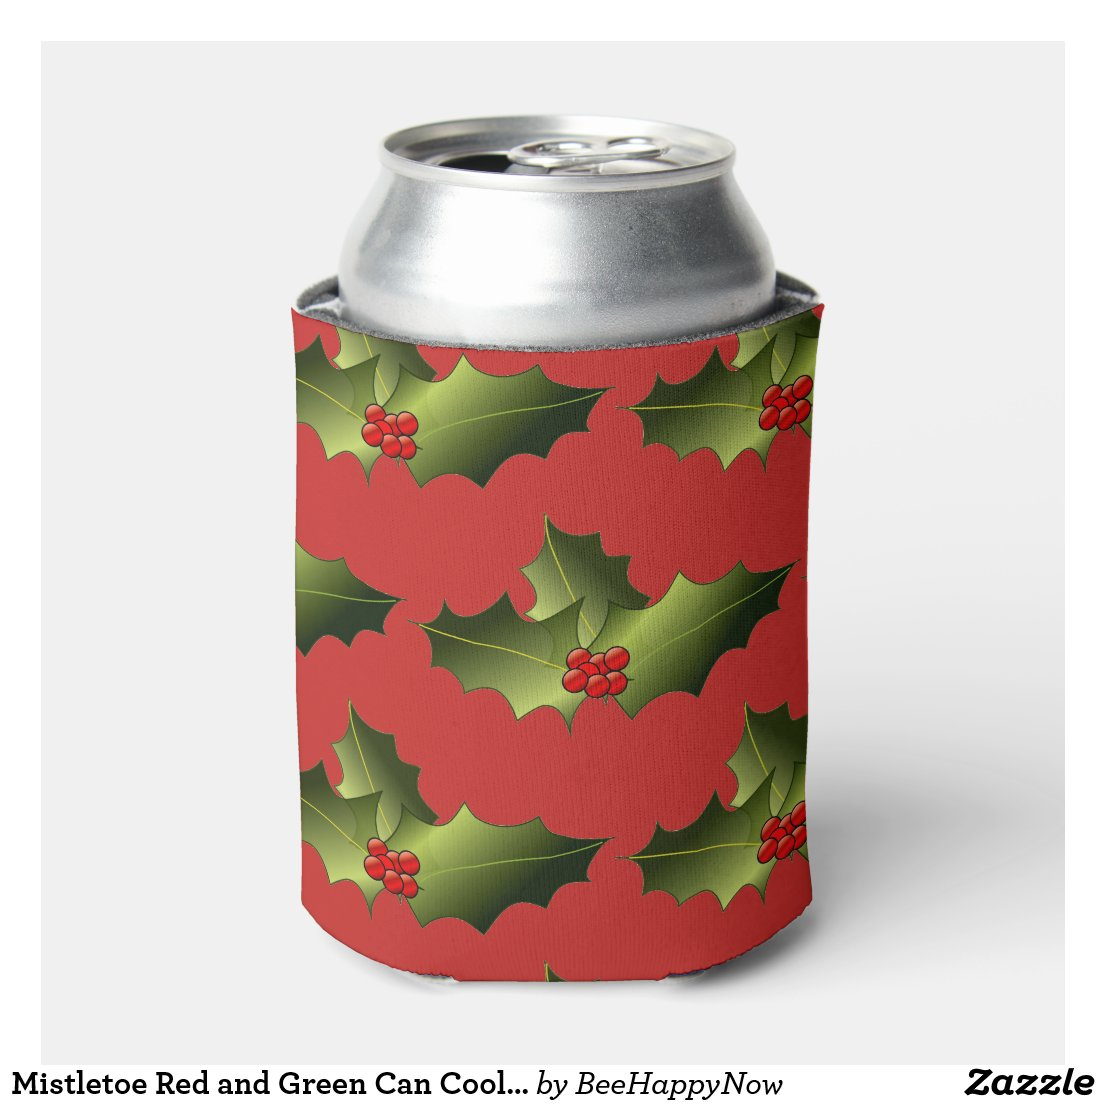 Mistletoe Red and Green Can Cooler